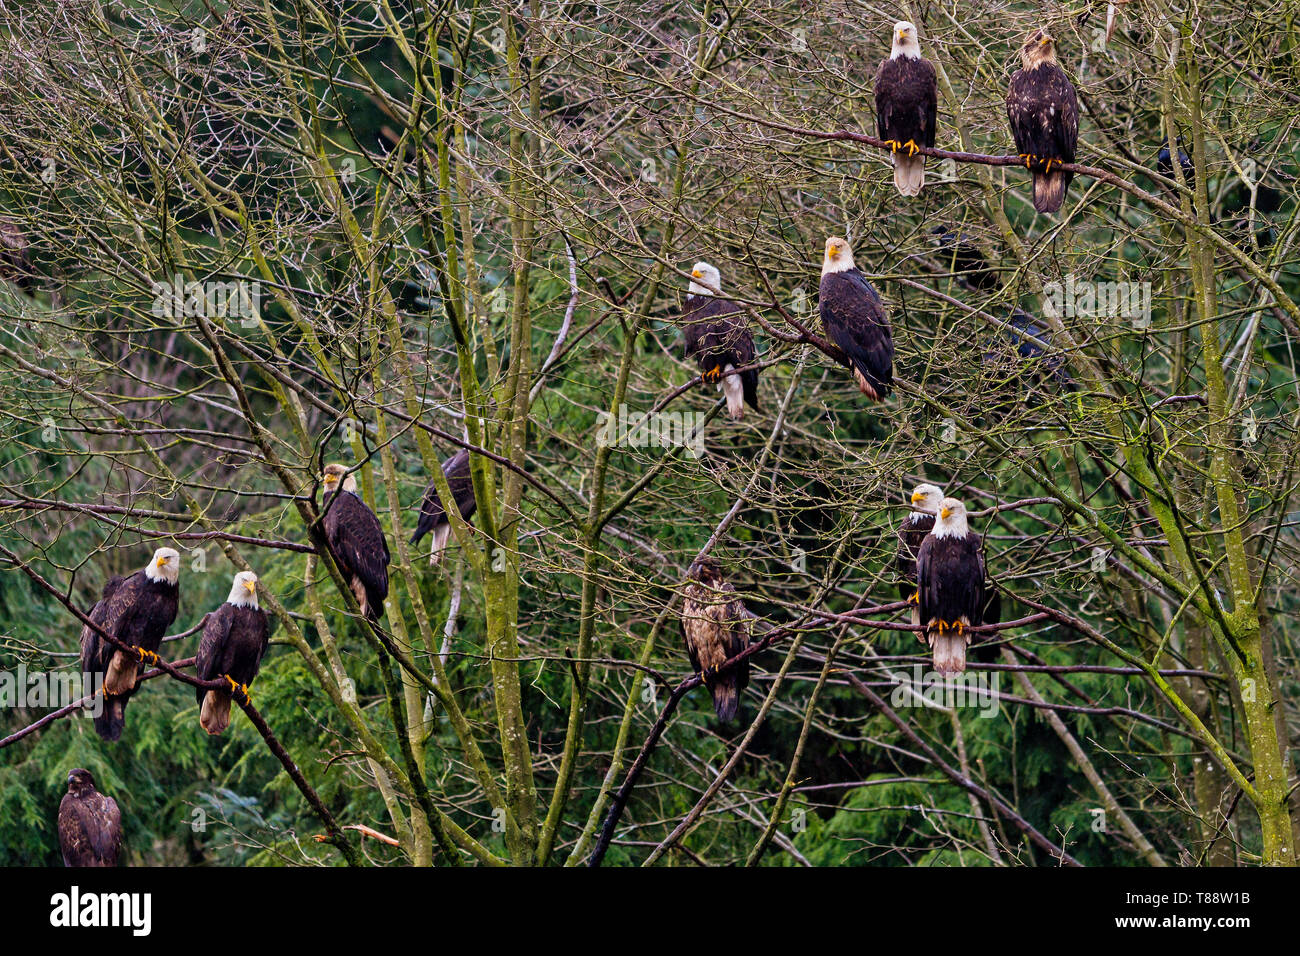 Multiple hungry bald eagles sitting in a tree along the Great Bear Rainforest coastline near the Broughton Archipelago, First Nations Territory, Briti - Stock Image